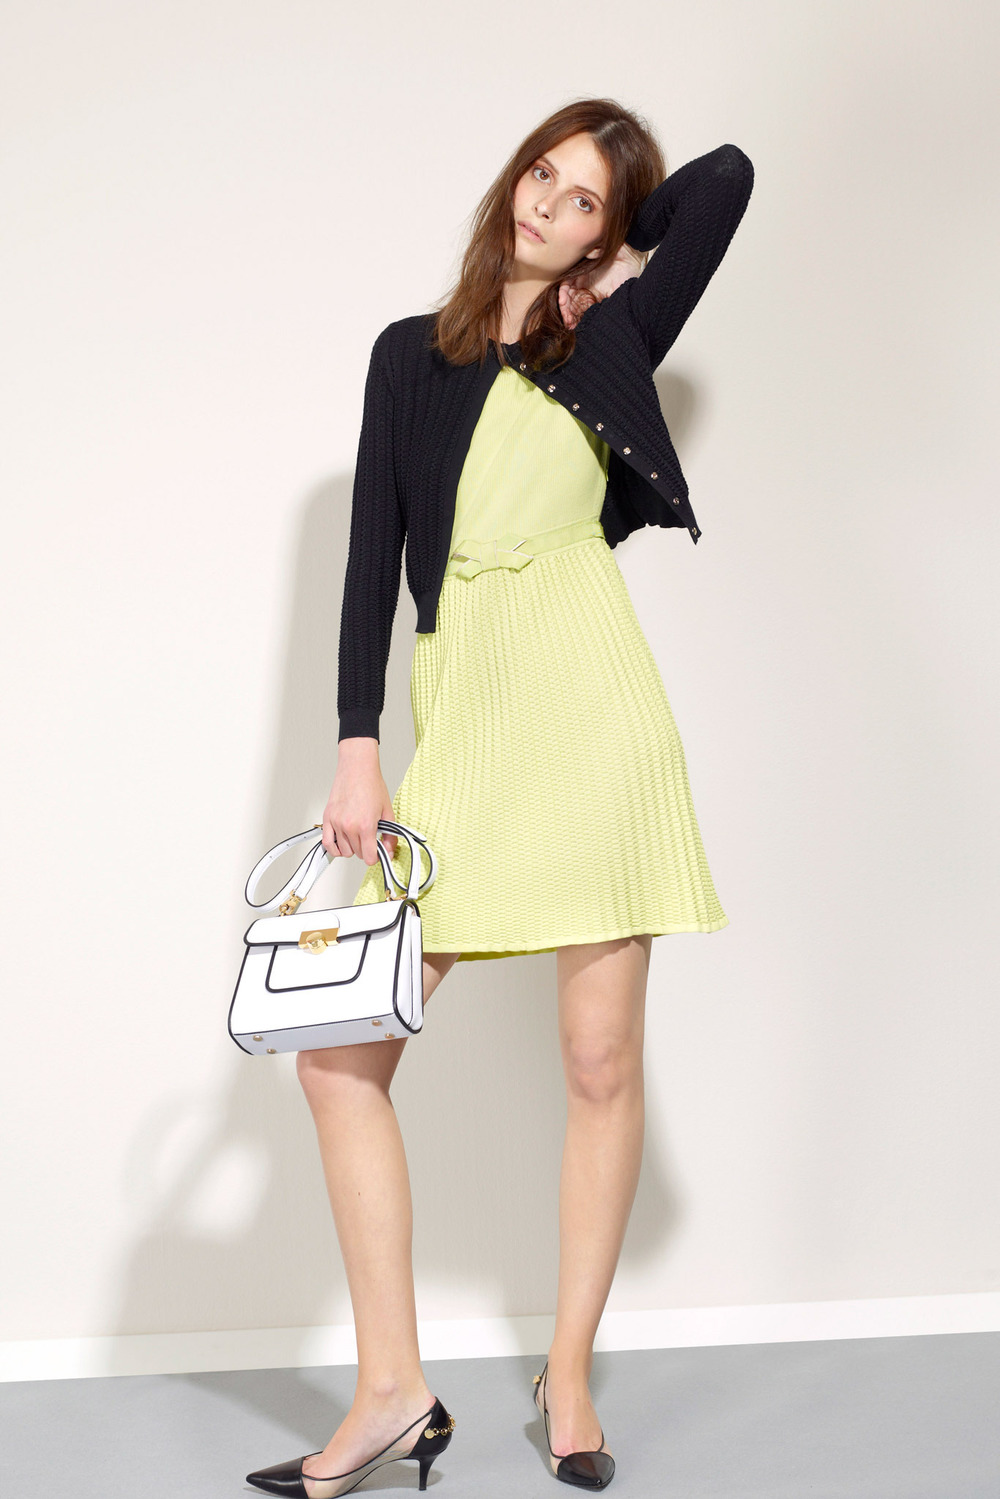 Women's-Knitwear-For-Spring-2015-8.jpg